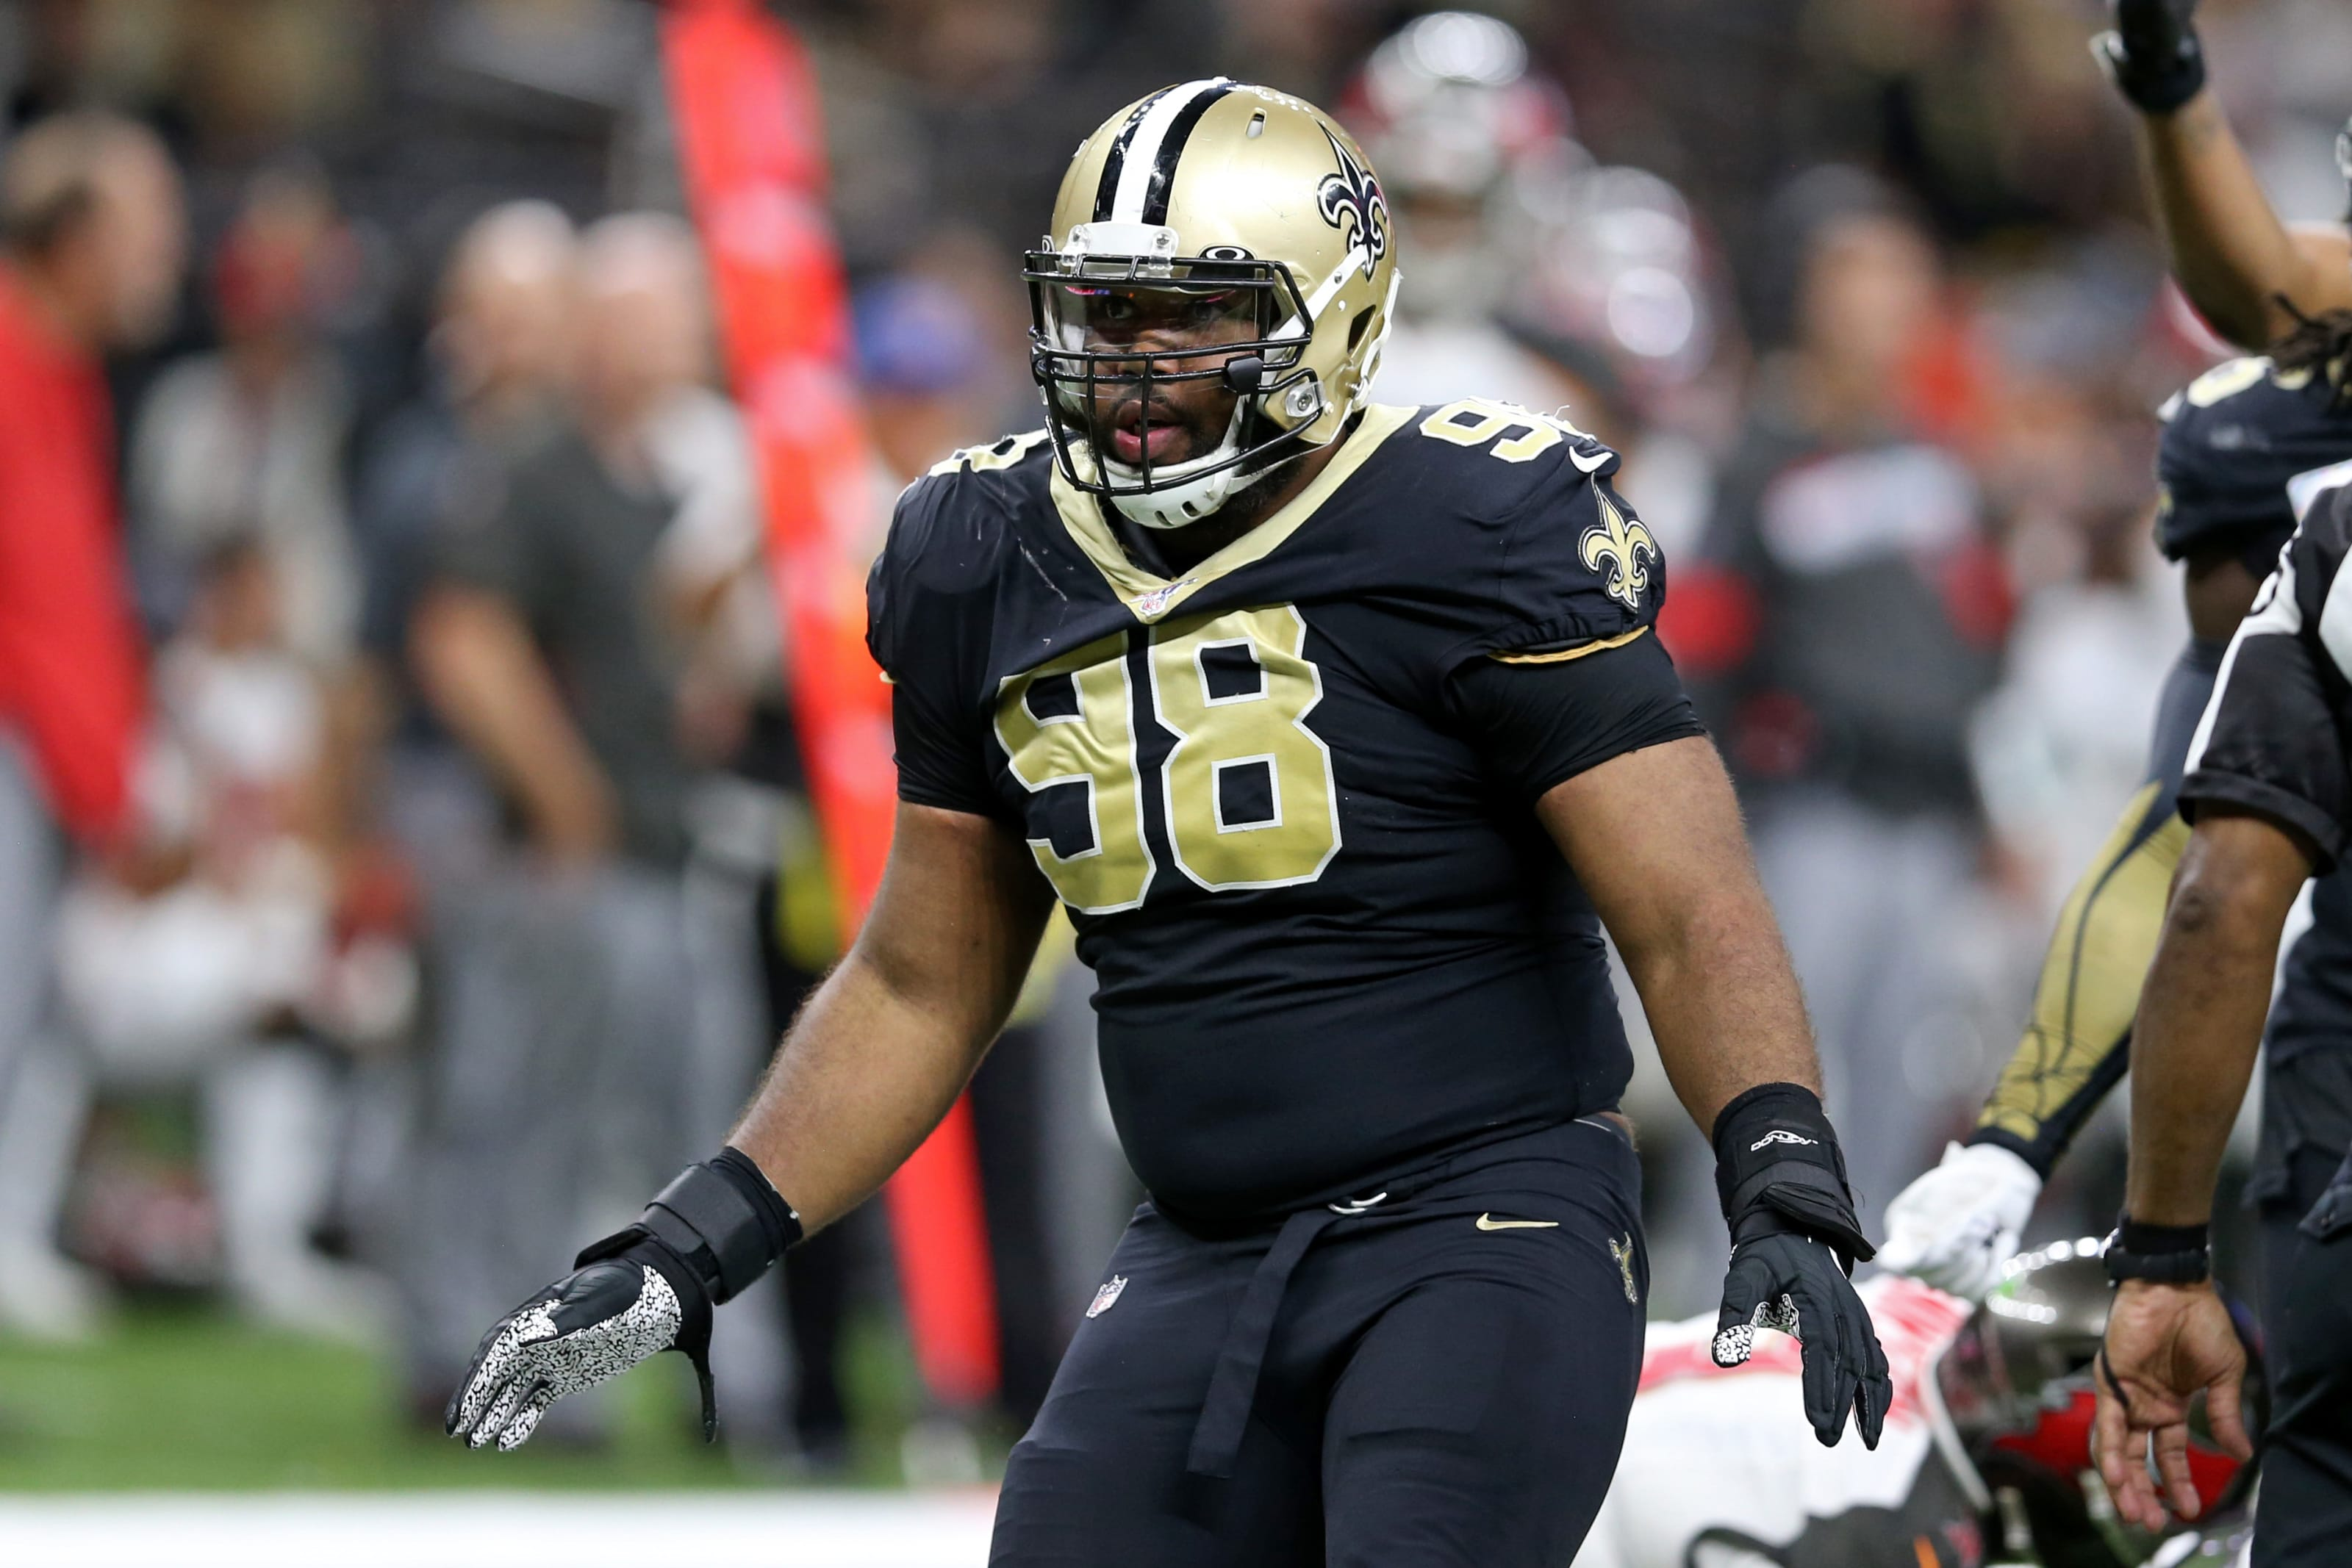 Sheldon Rankins, New Orleans Saints